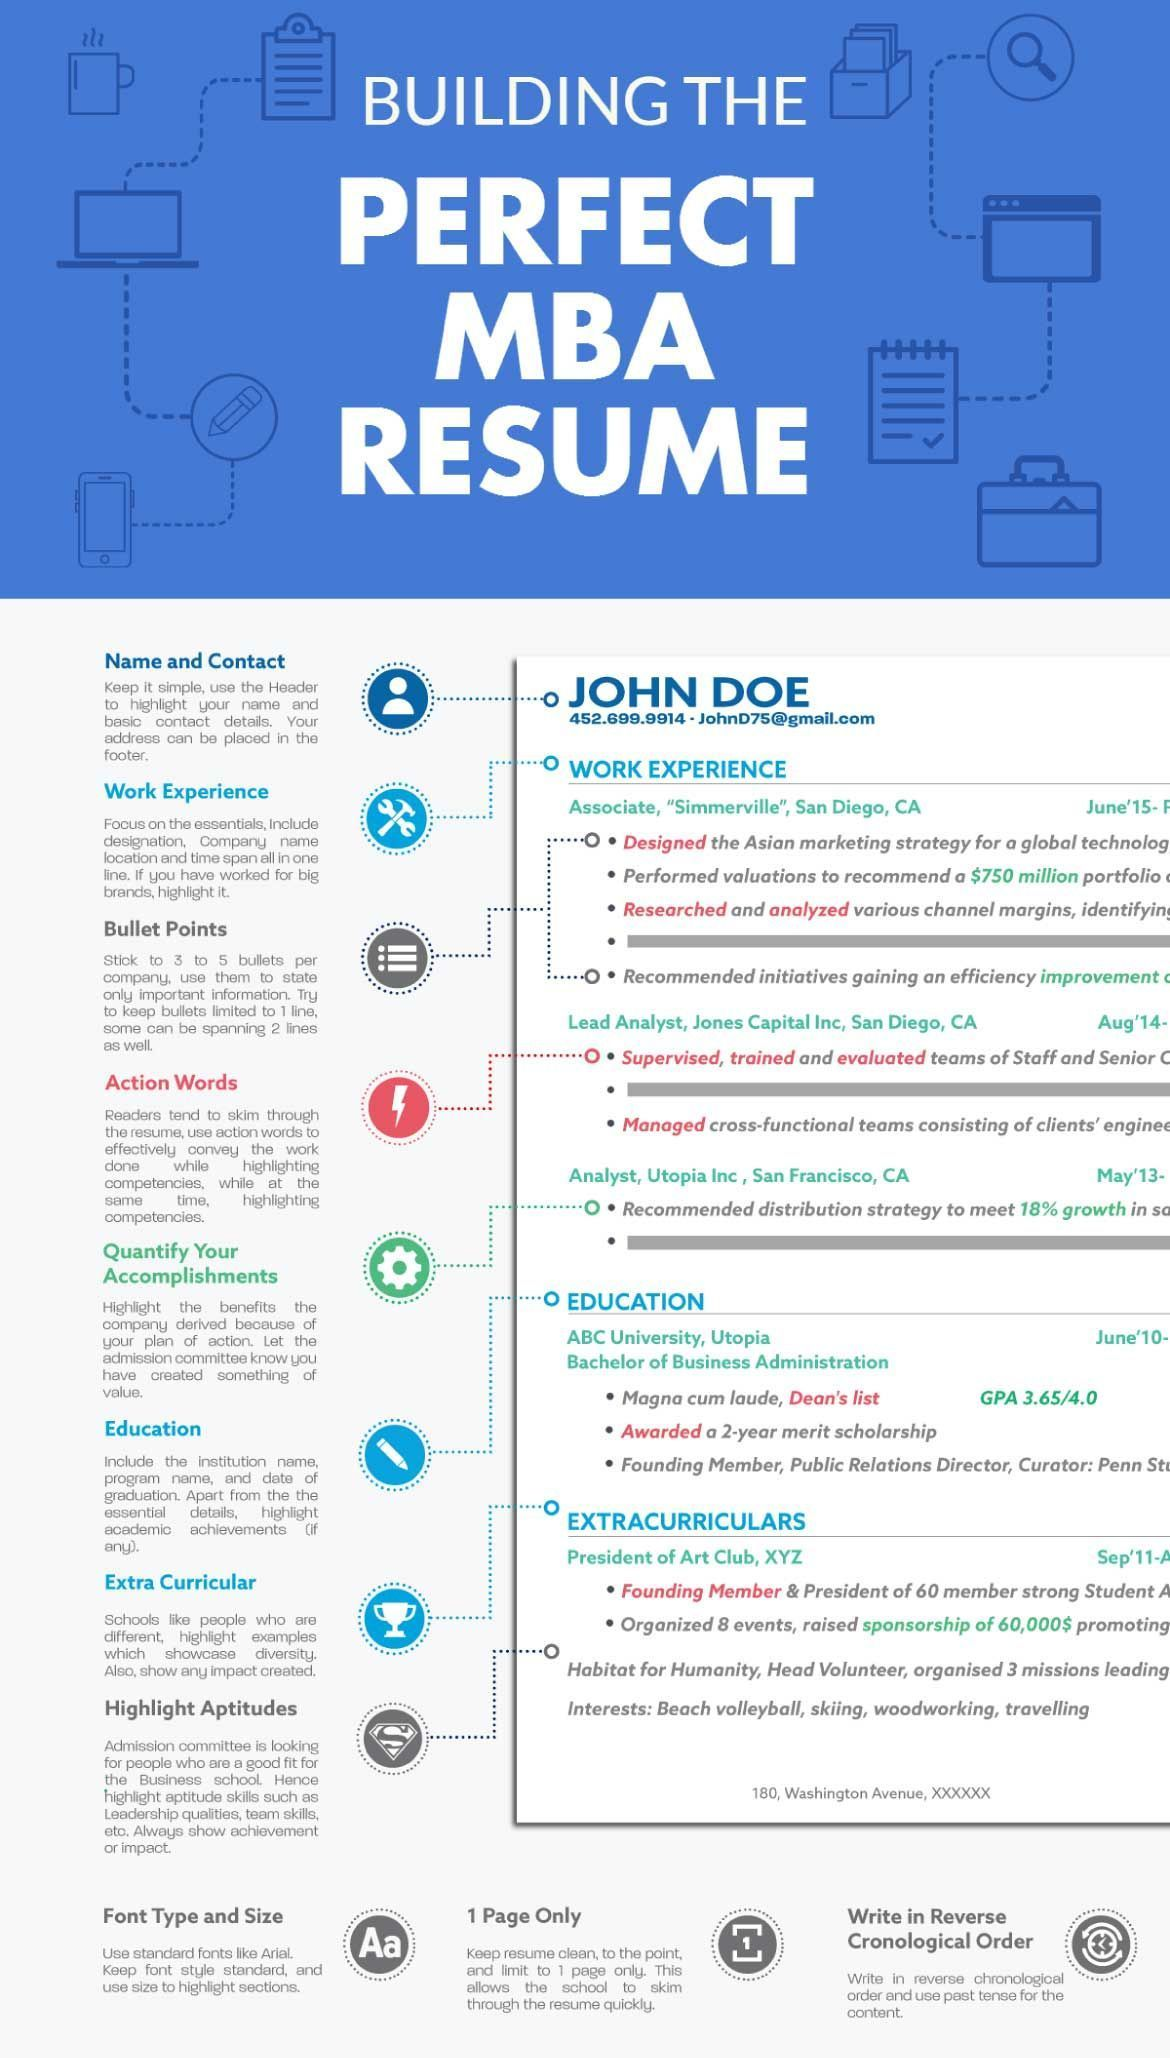 10 Steps Towards Creating The Perfect MBA Resume Infographic    Http://elearninginfographics.